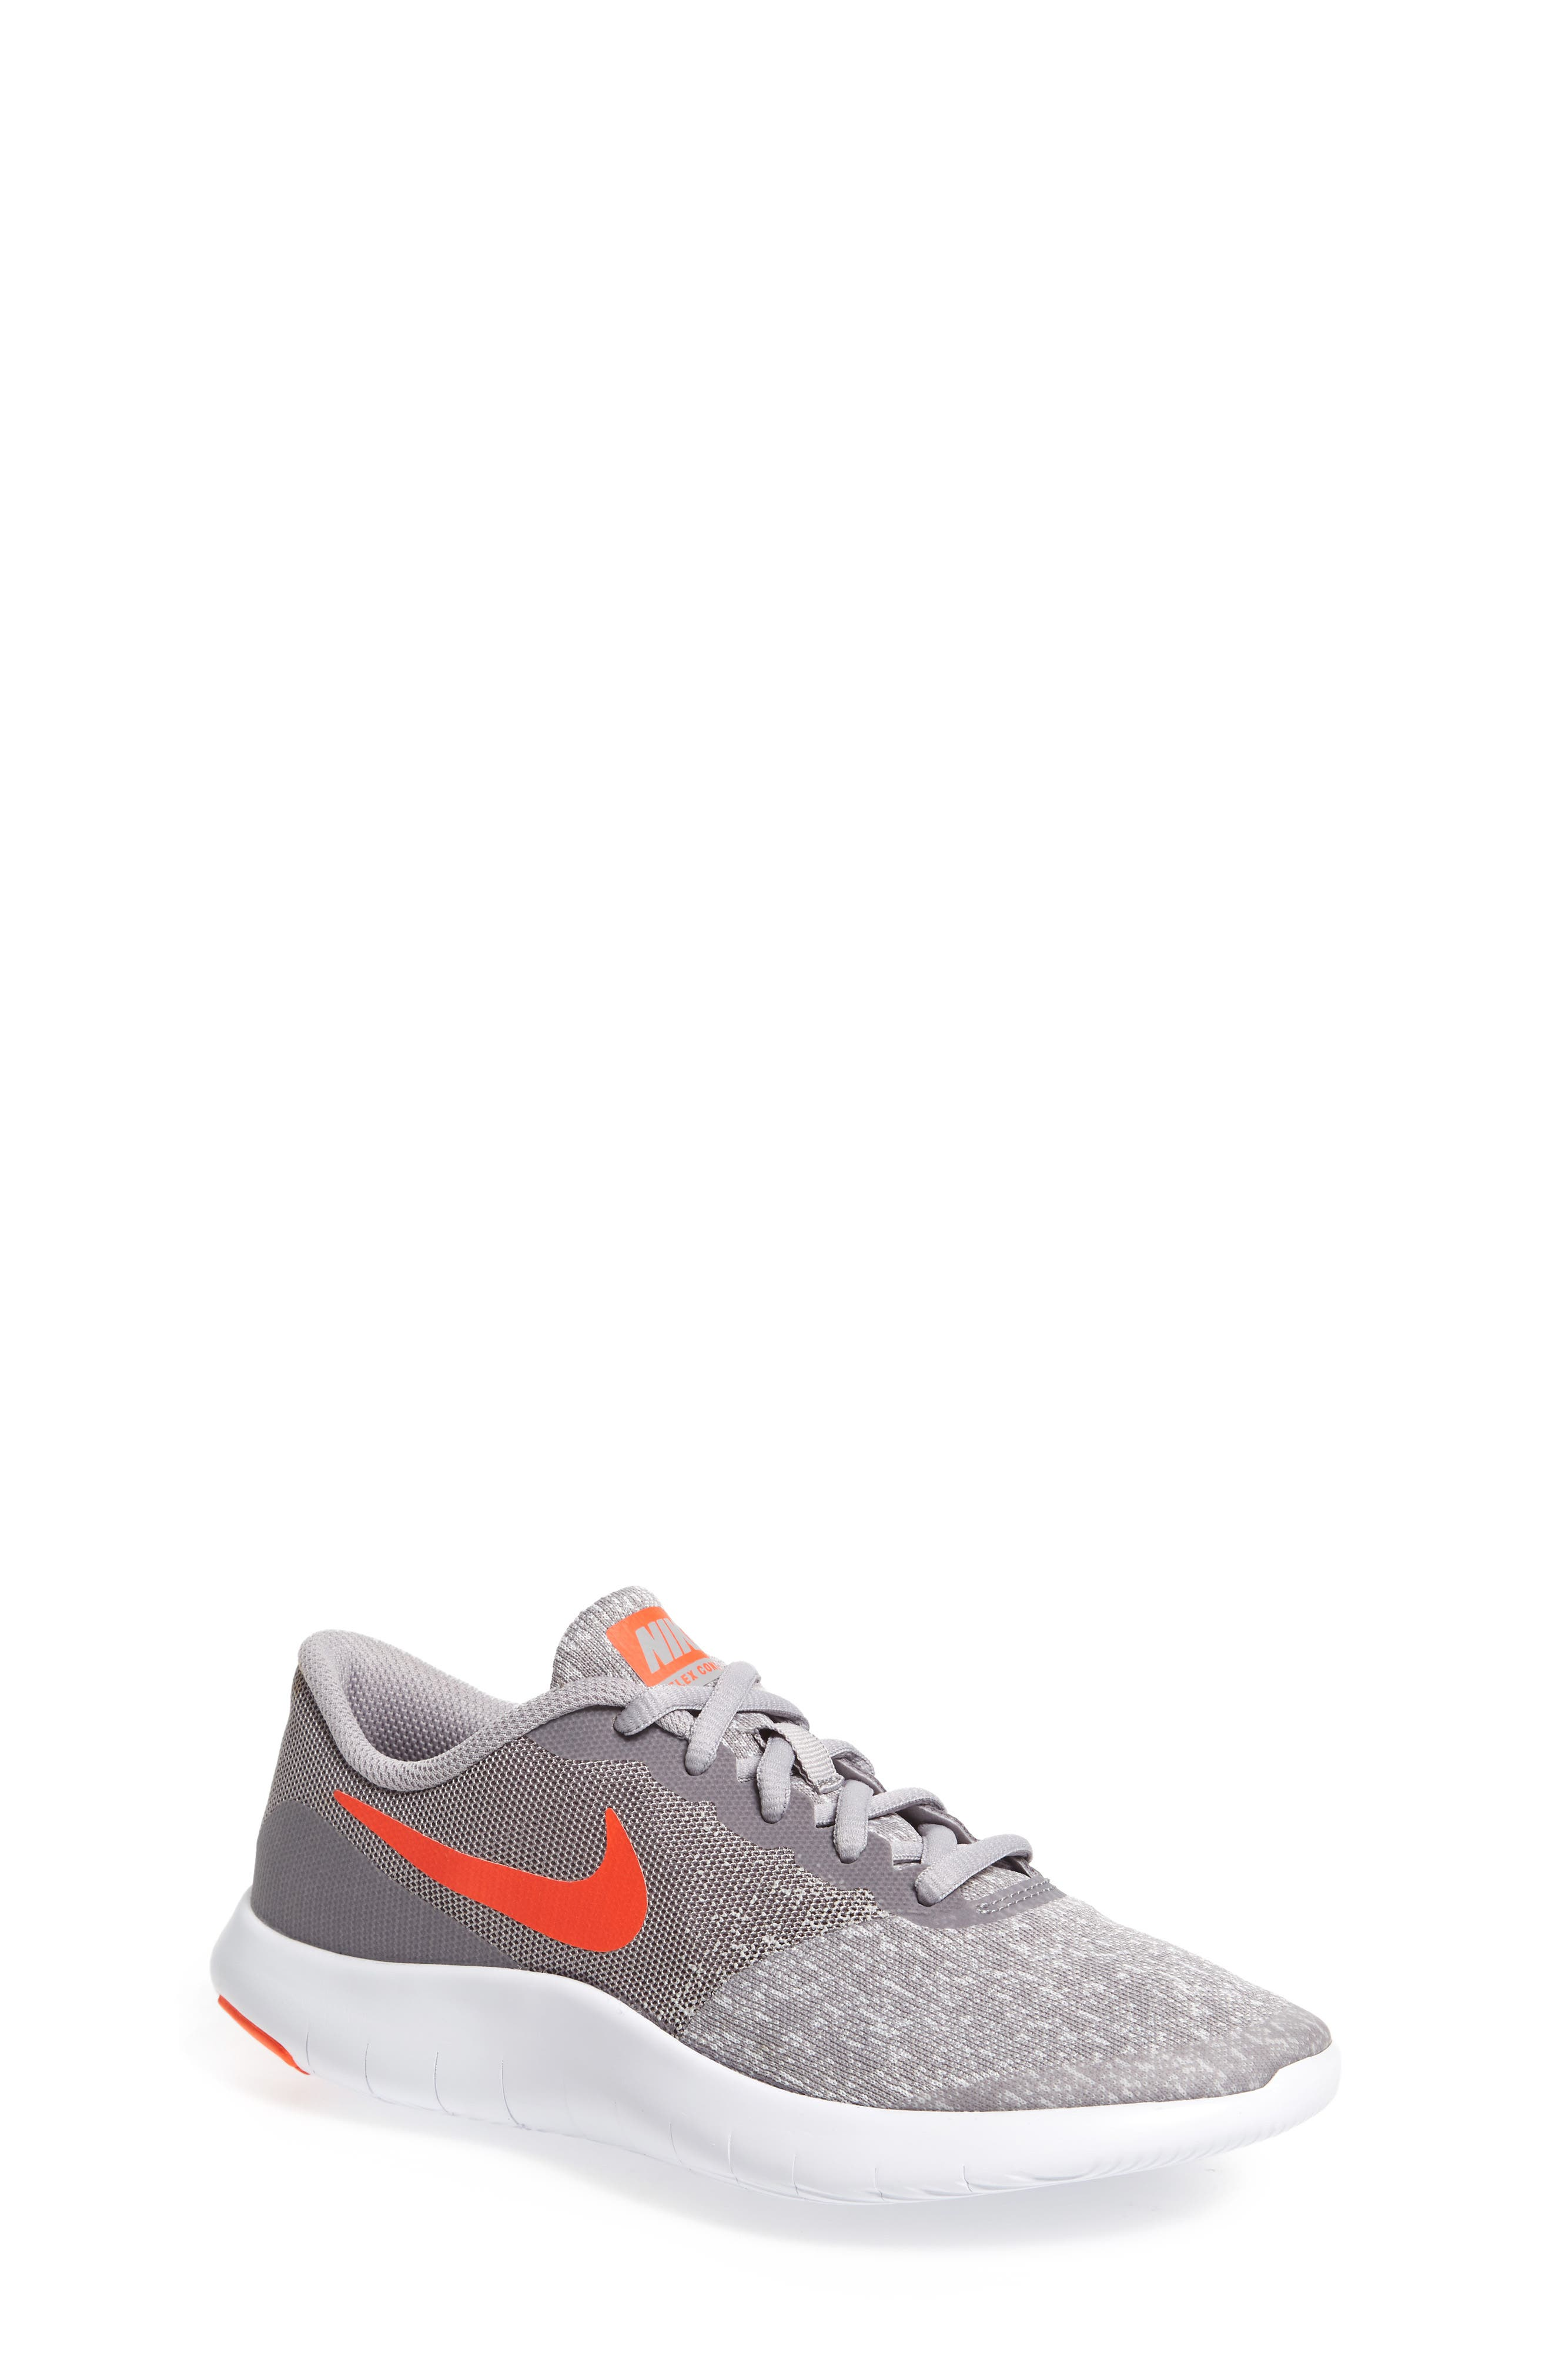 Flex Contact Running Shoe,                         Main,                         color, Atmosphere Grey/ Total Crimson